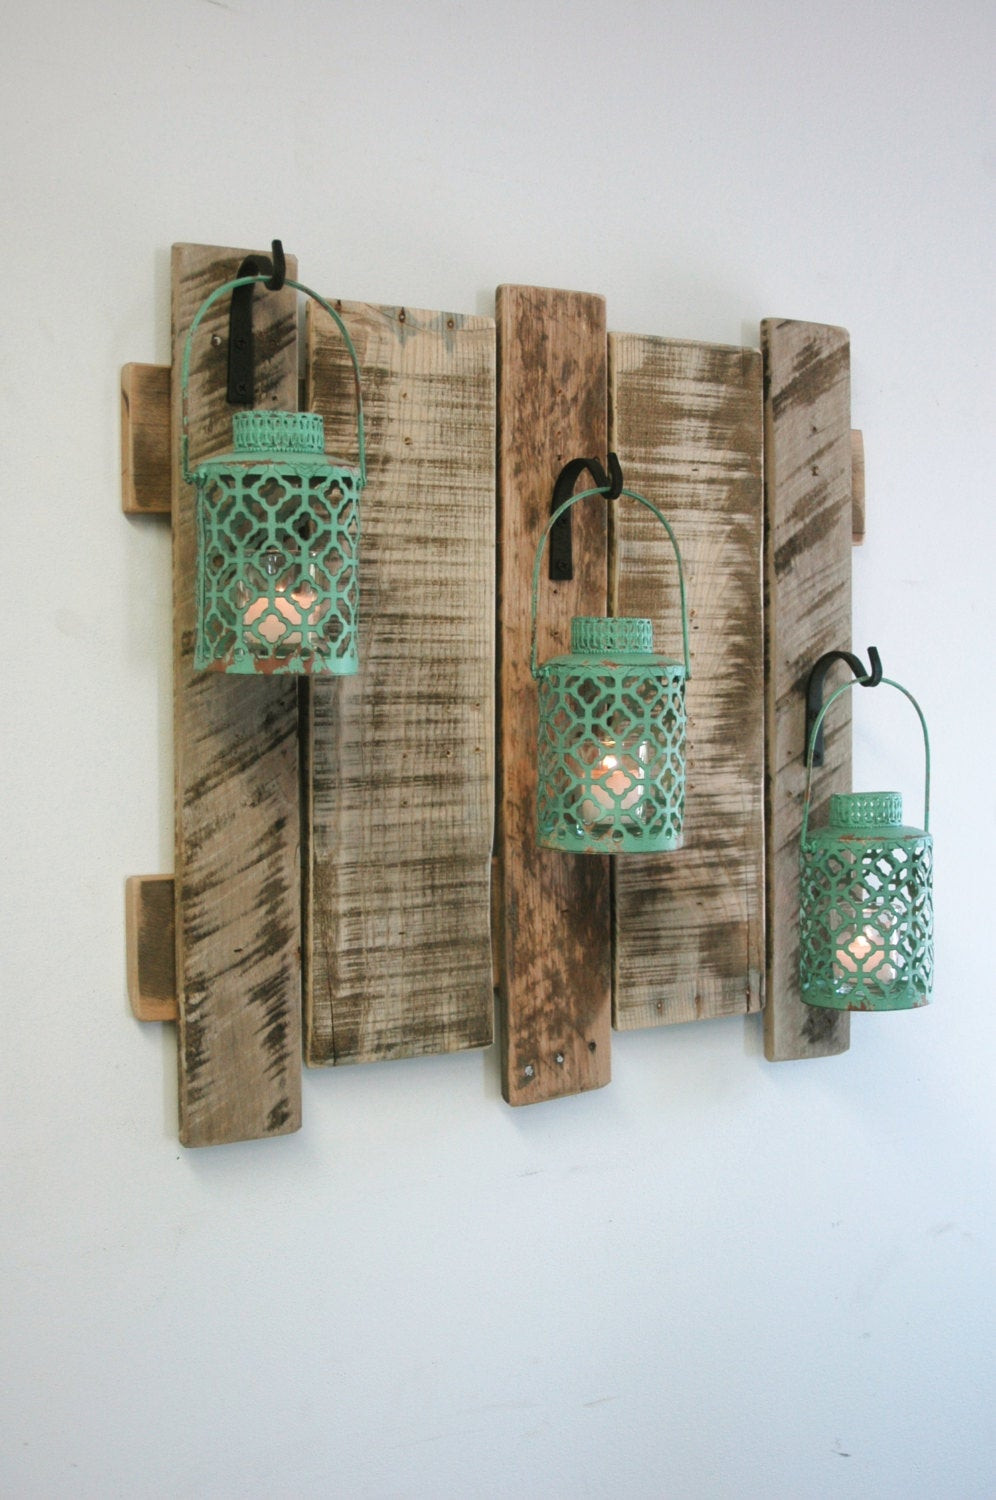 Best ideas about Wall Art Decor . Save or Pin Pallet wall decor with Antique Turquoise Metal Lanterns Now.